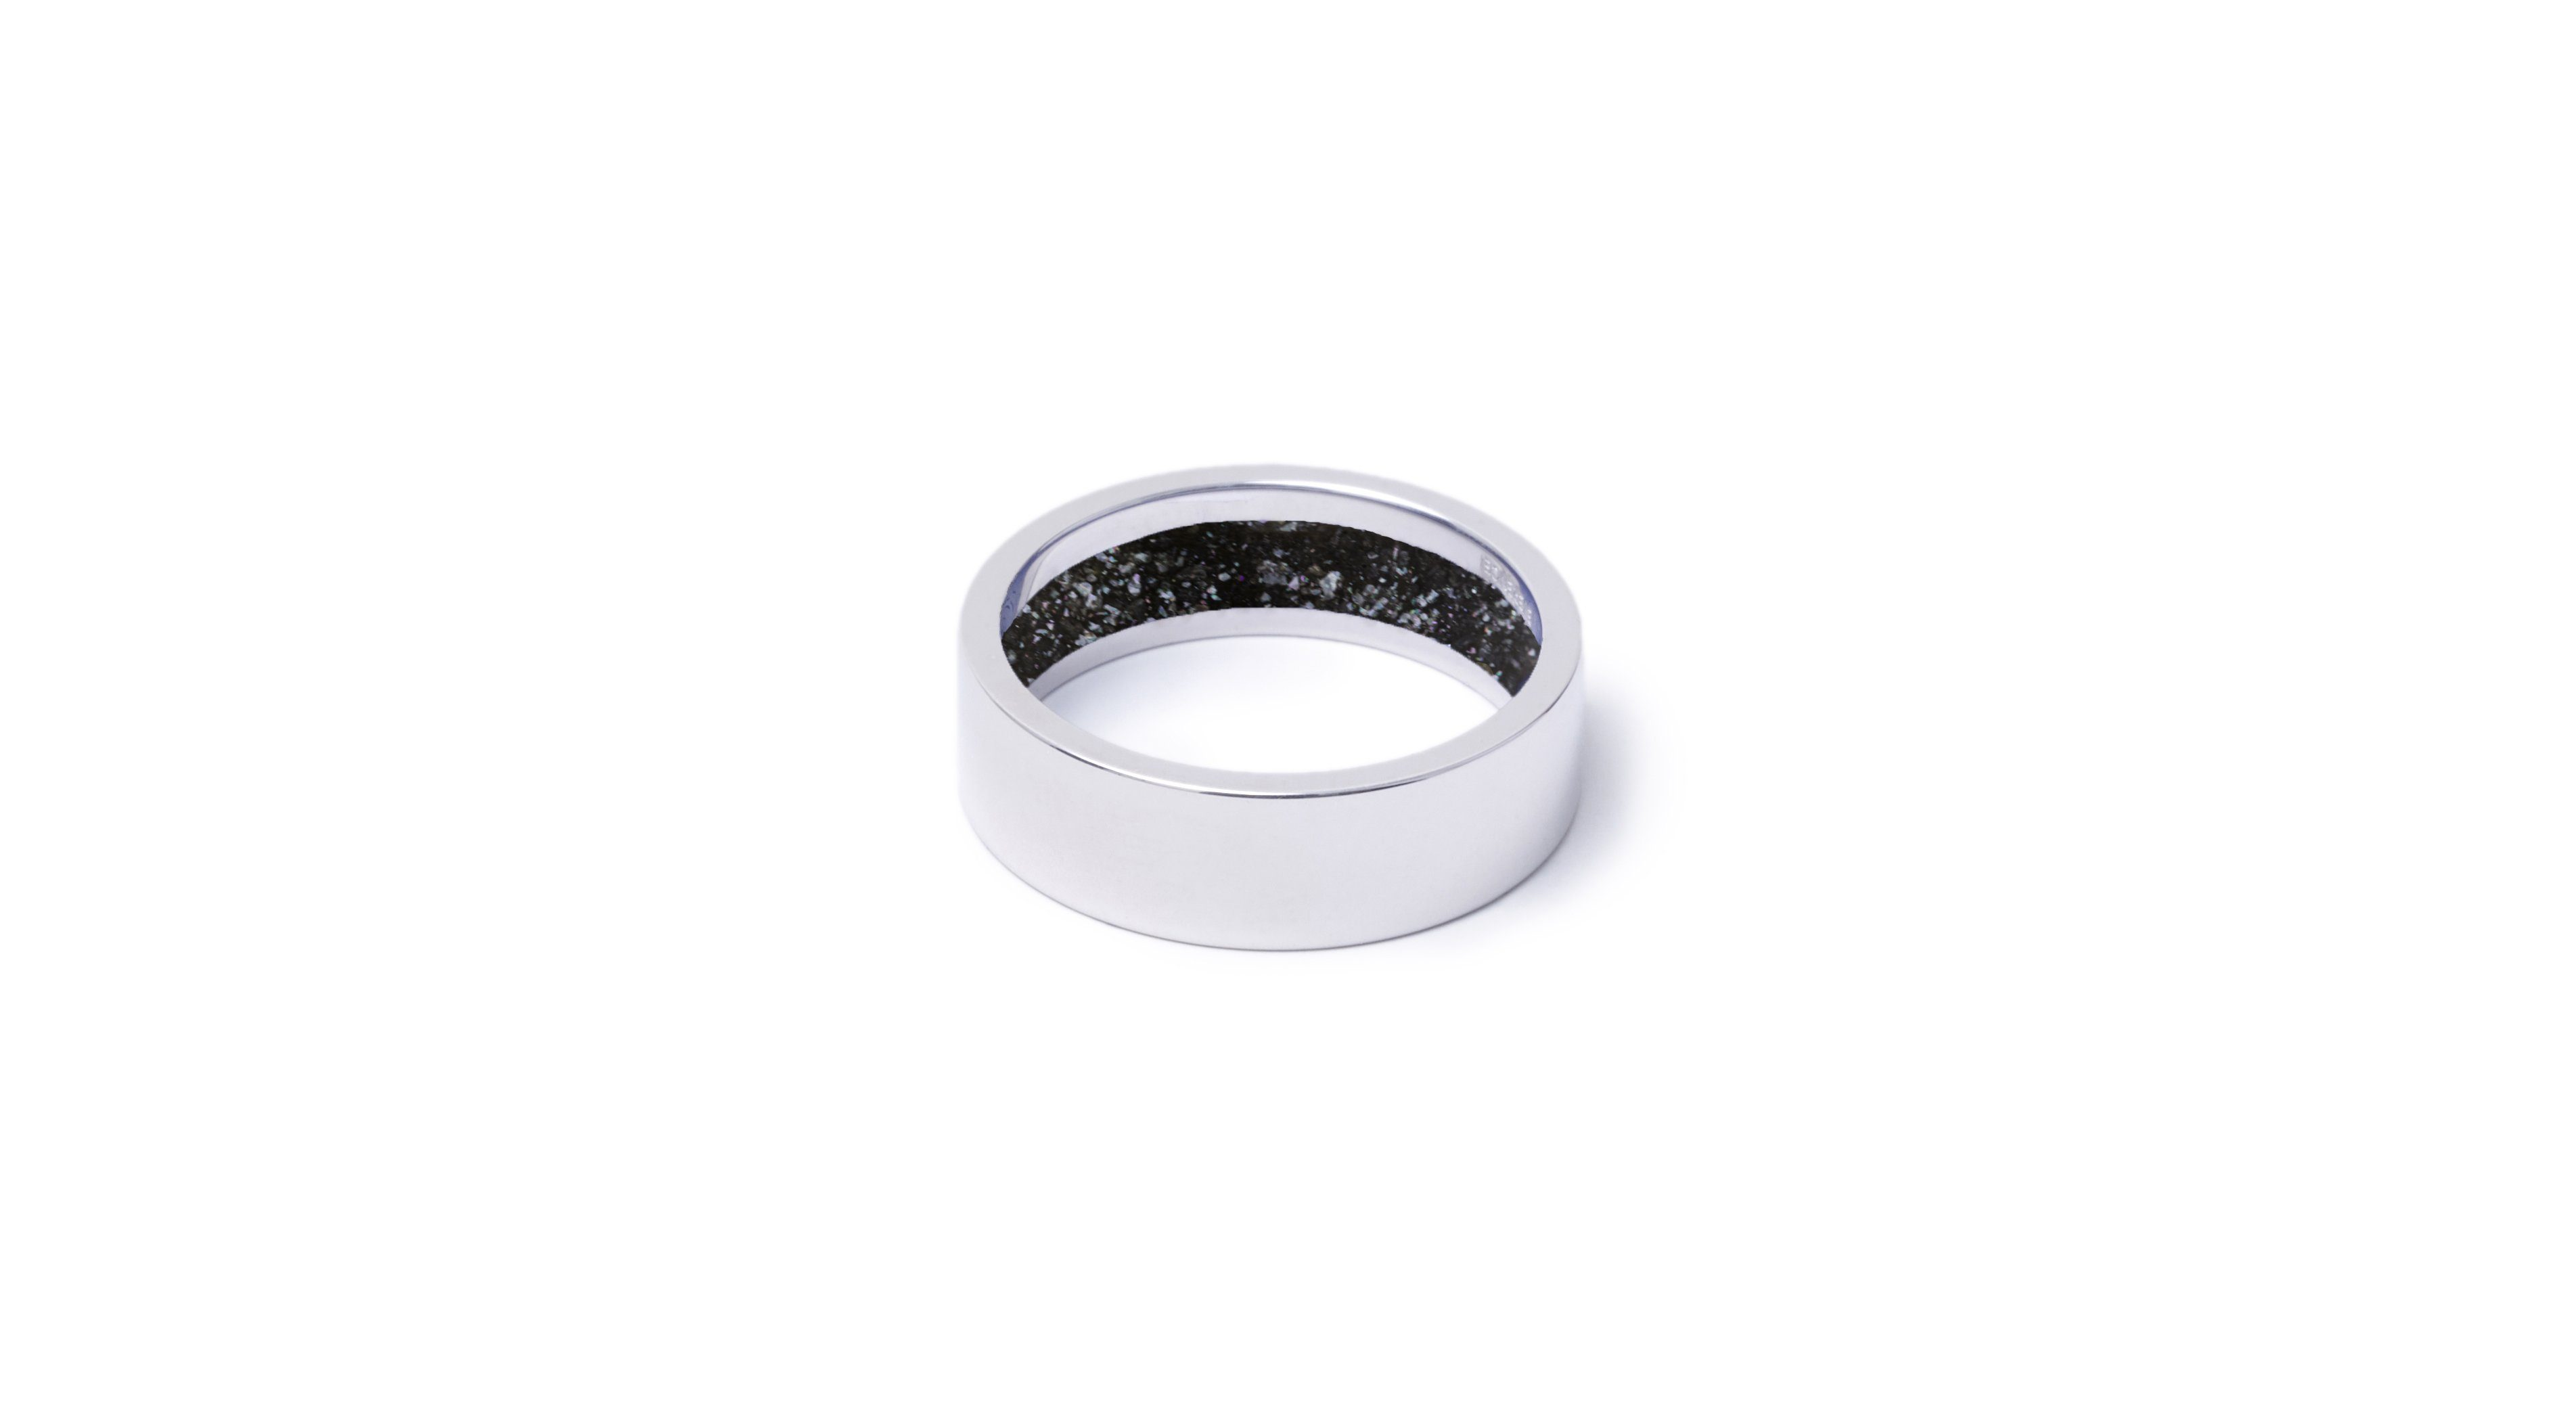 Everence Ring, 10k White Gold everence.life